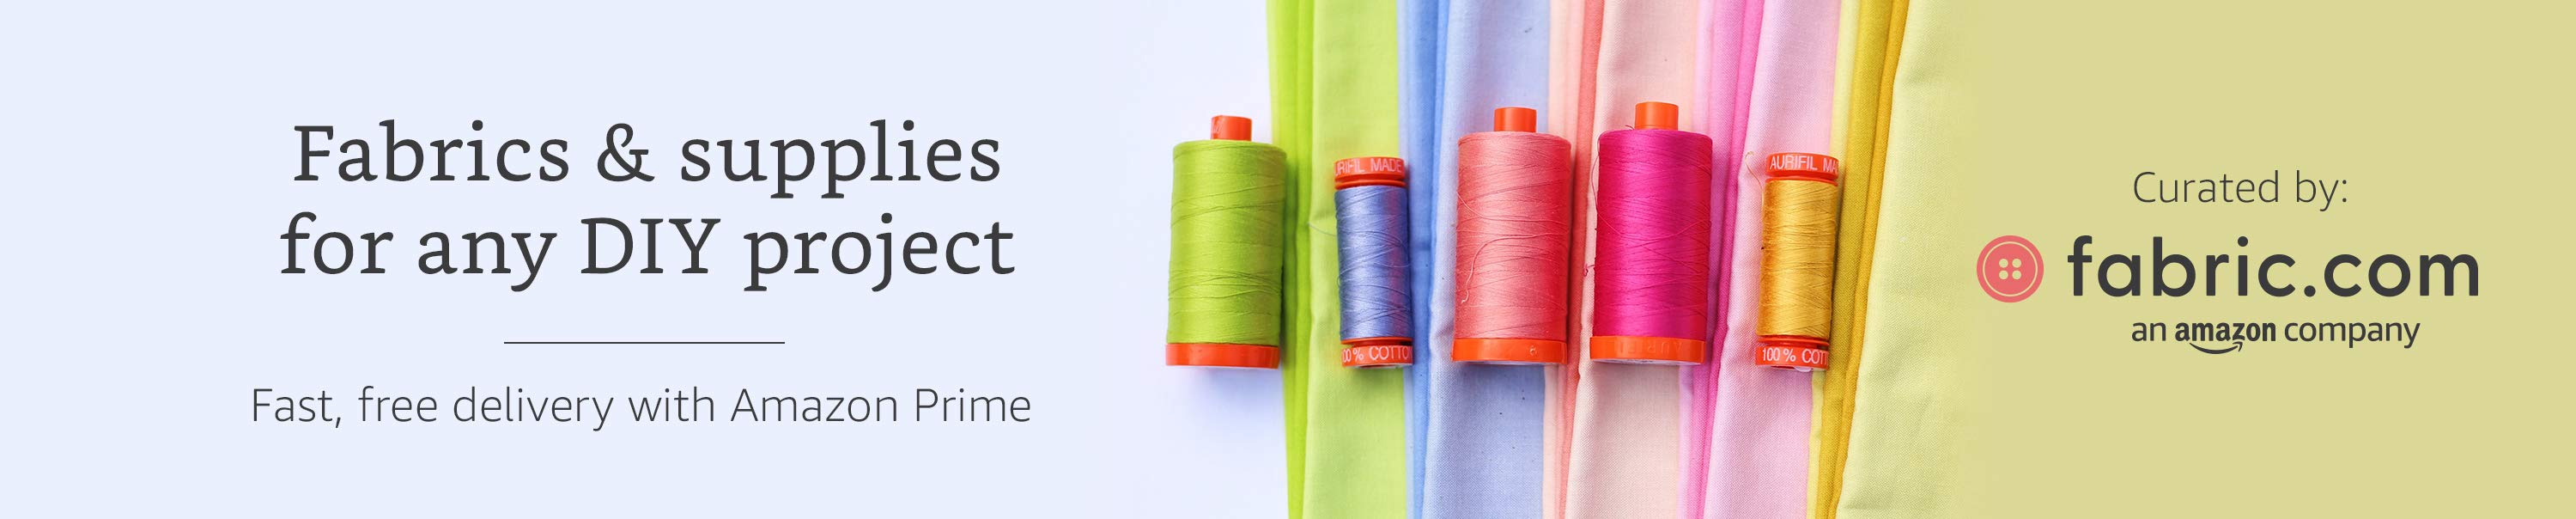 Fabric on Amazon - fabric and supplies for any DIY project, delivered with prime